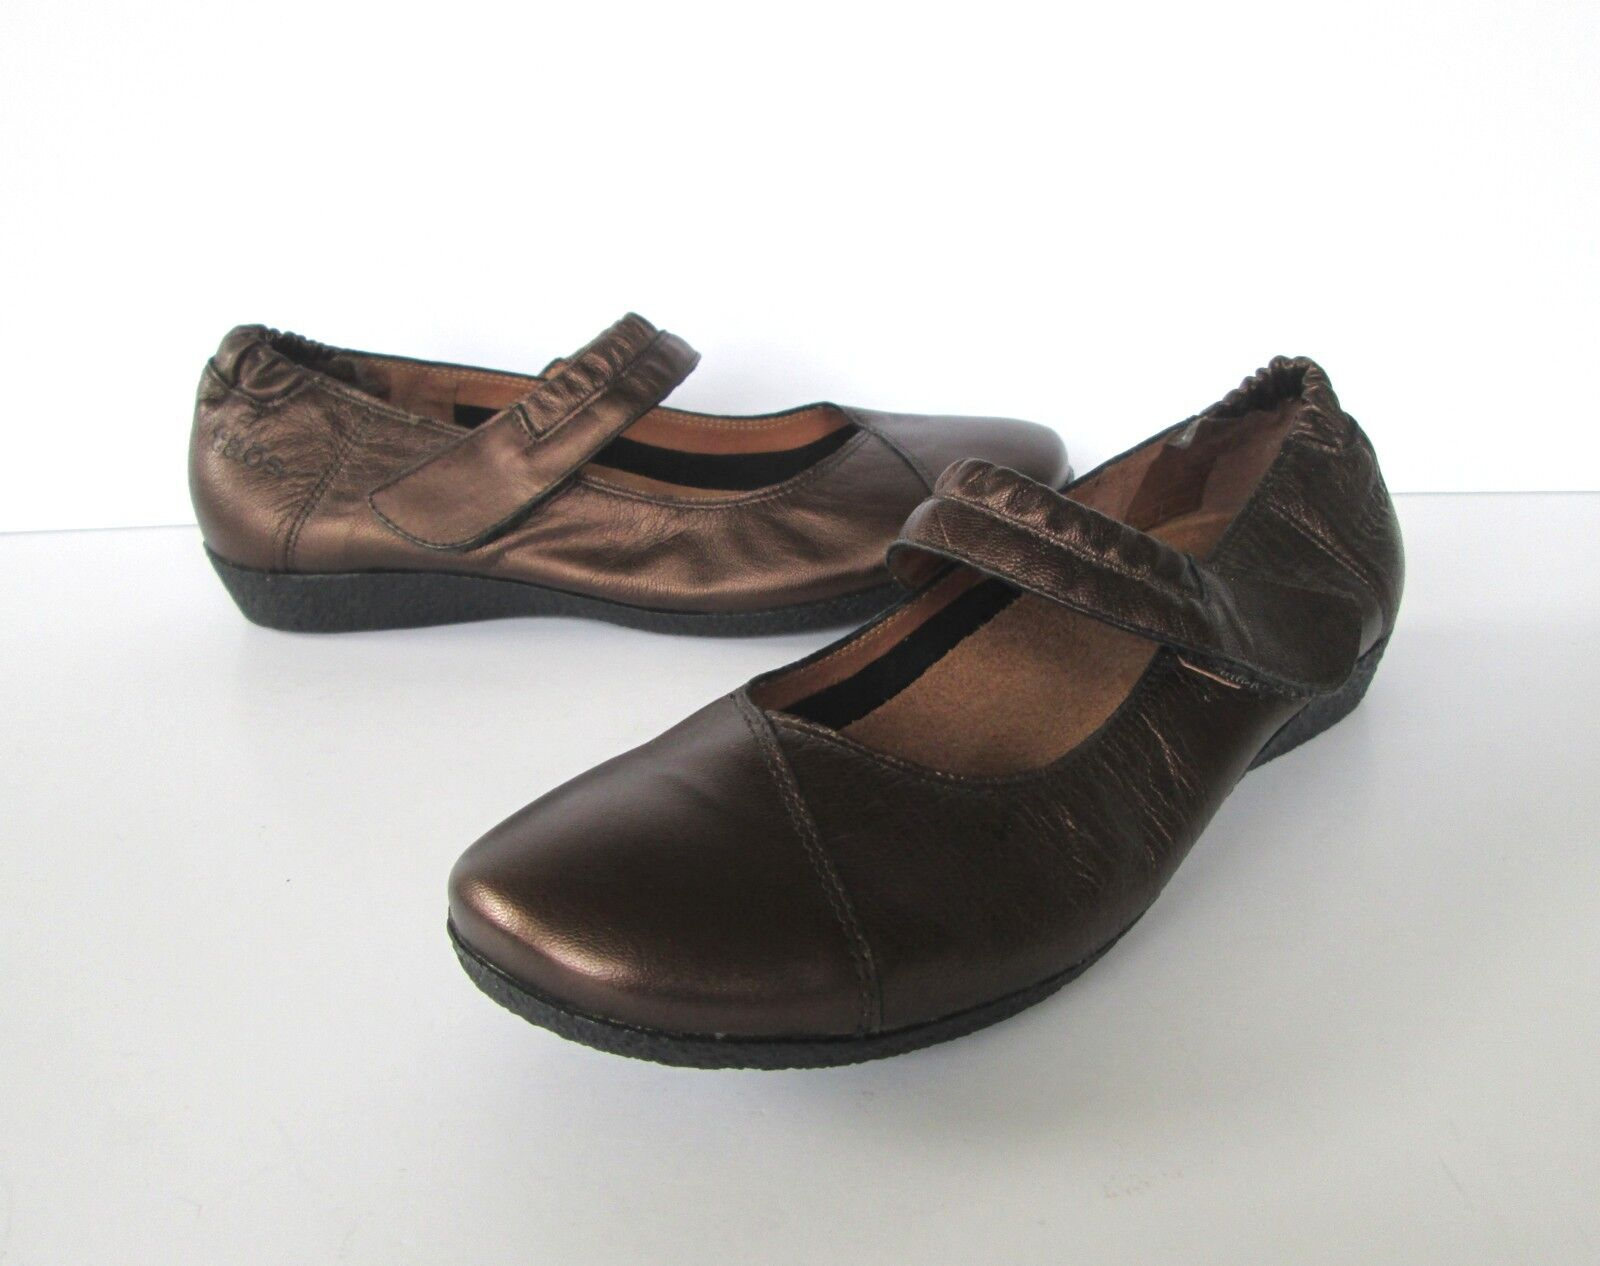 Taos Womens Copper Brown Metallic Leather Mary Jane style shoes 39 or 8 to 8.5 M